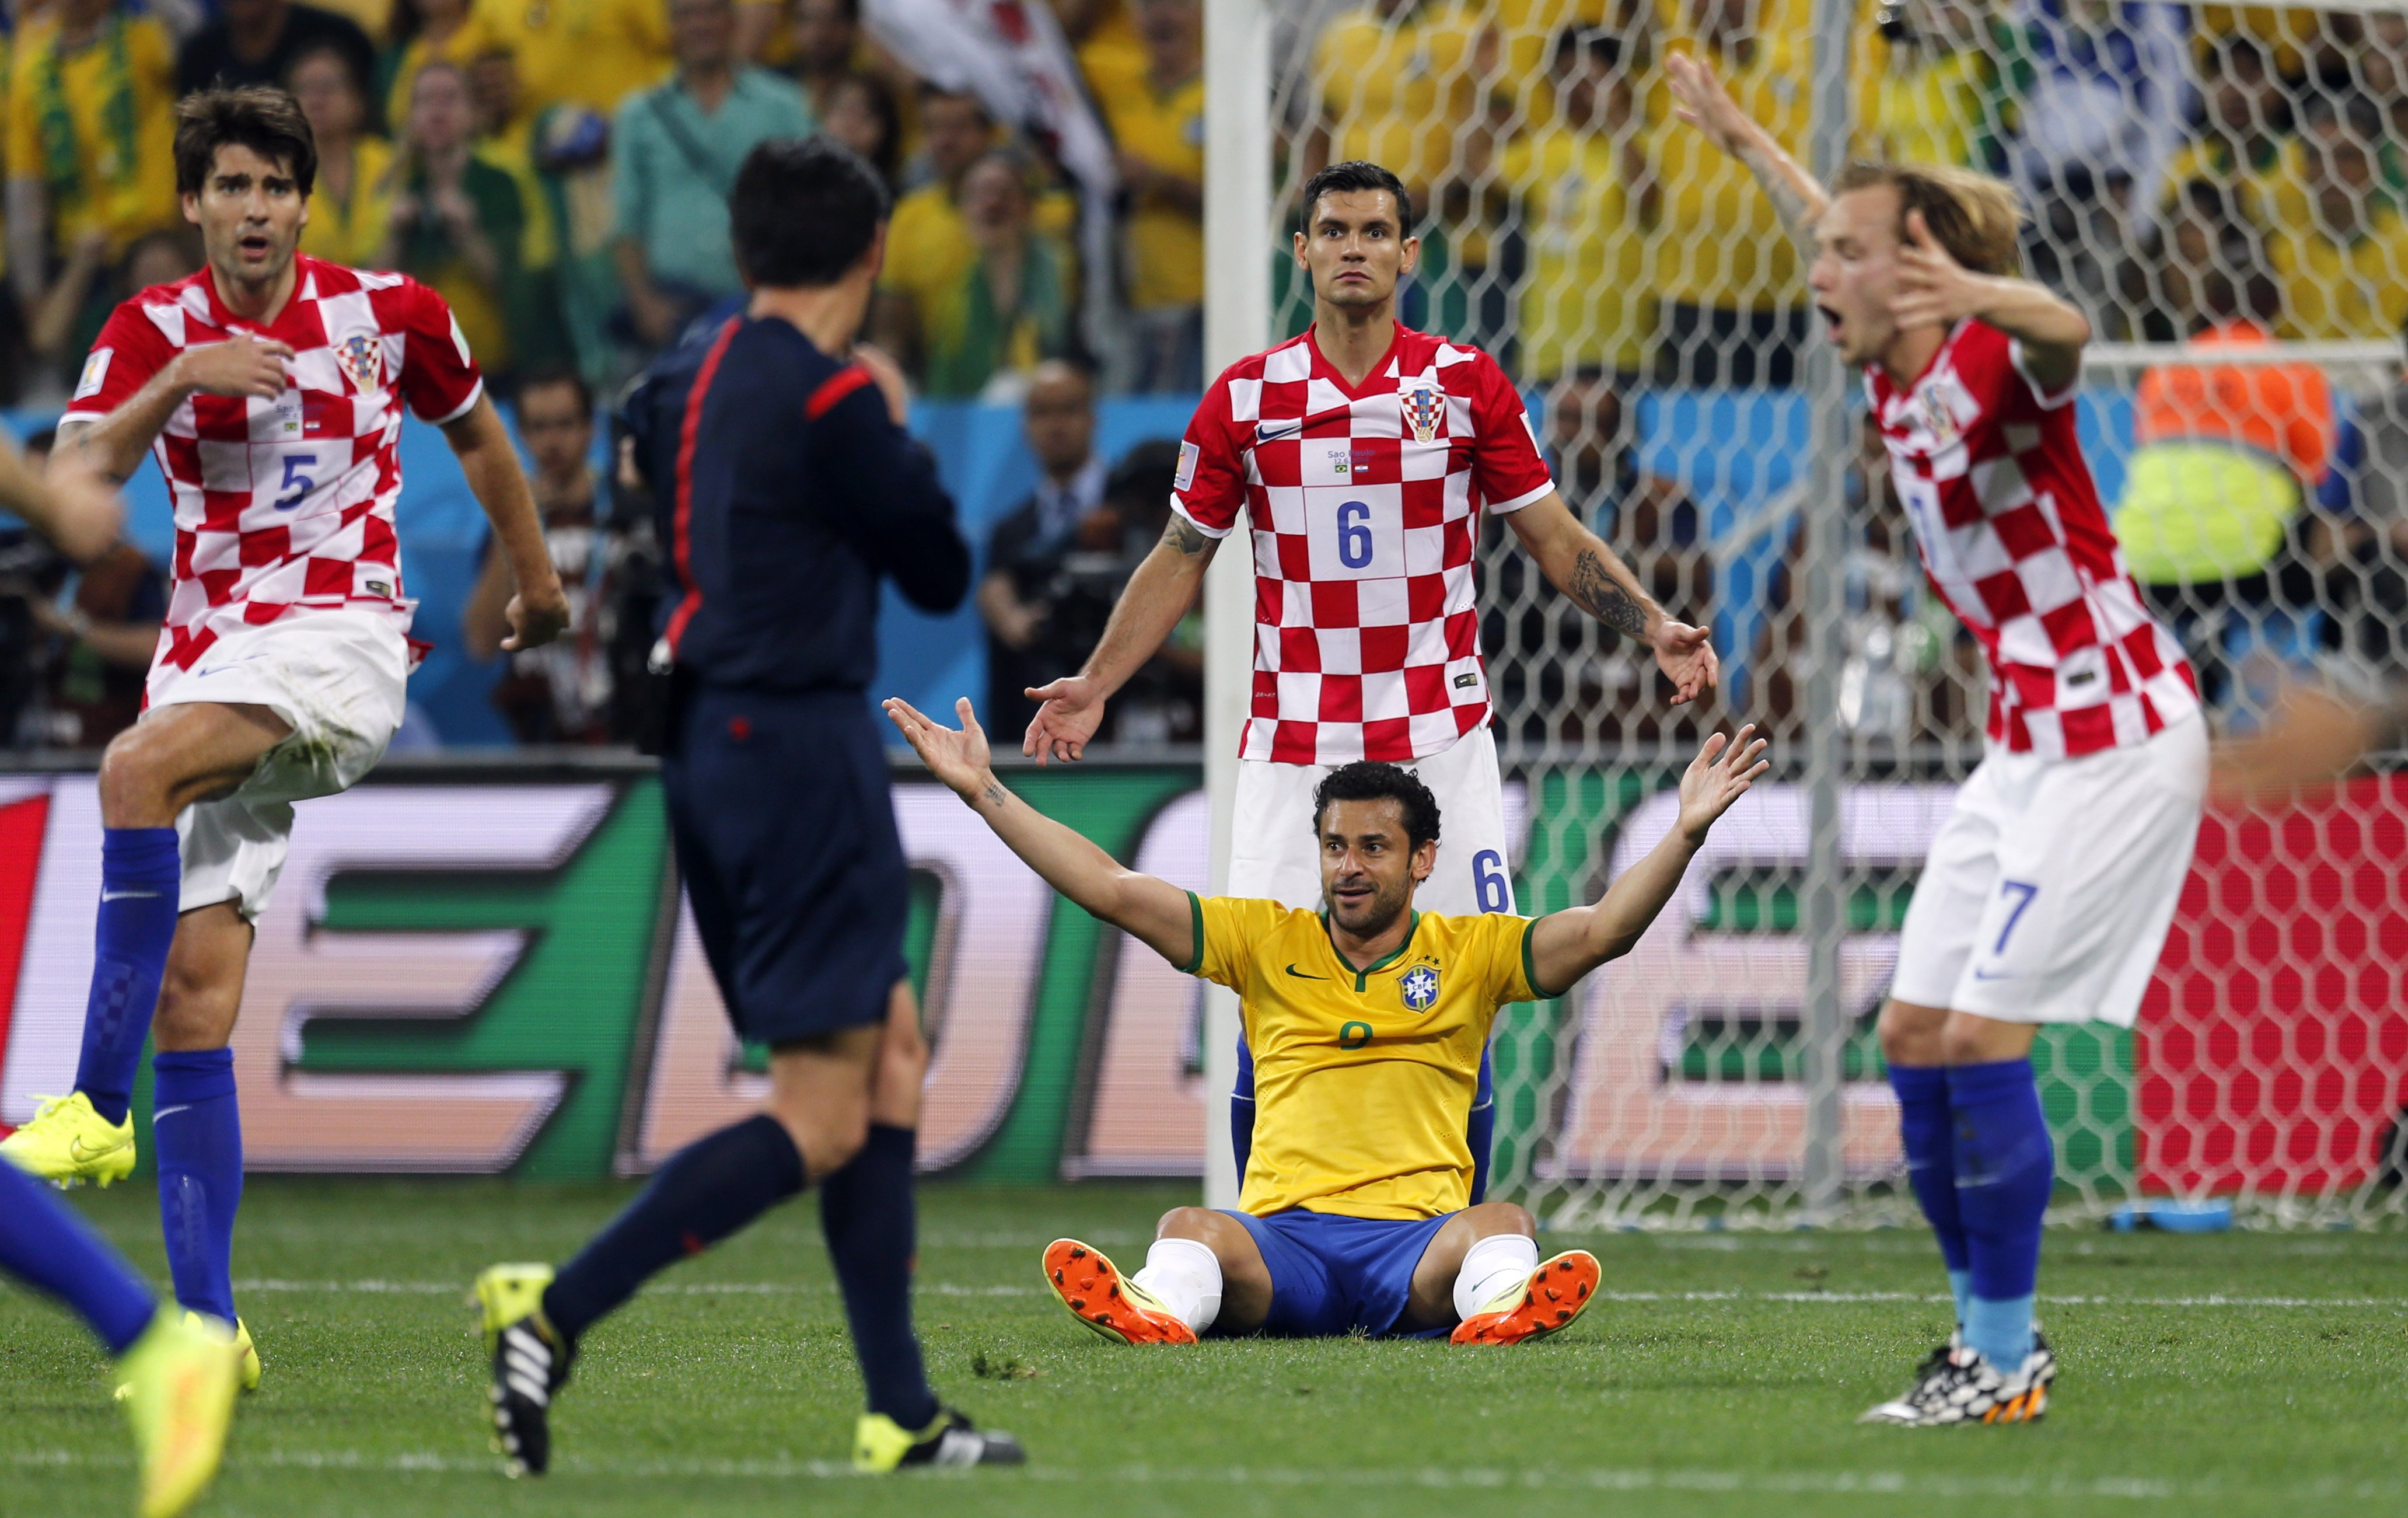 Brazil's Fred sits on the pitch as Croatian players Vedran Corluka, Dejan Lovren and Ivan Rakitic protest after the referee called a penalty against Croatia during the group A World Cup soccer match in the opening game of the tournament at Itaquerao Stadium in Sao Paulo on June 12, 2014.